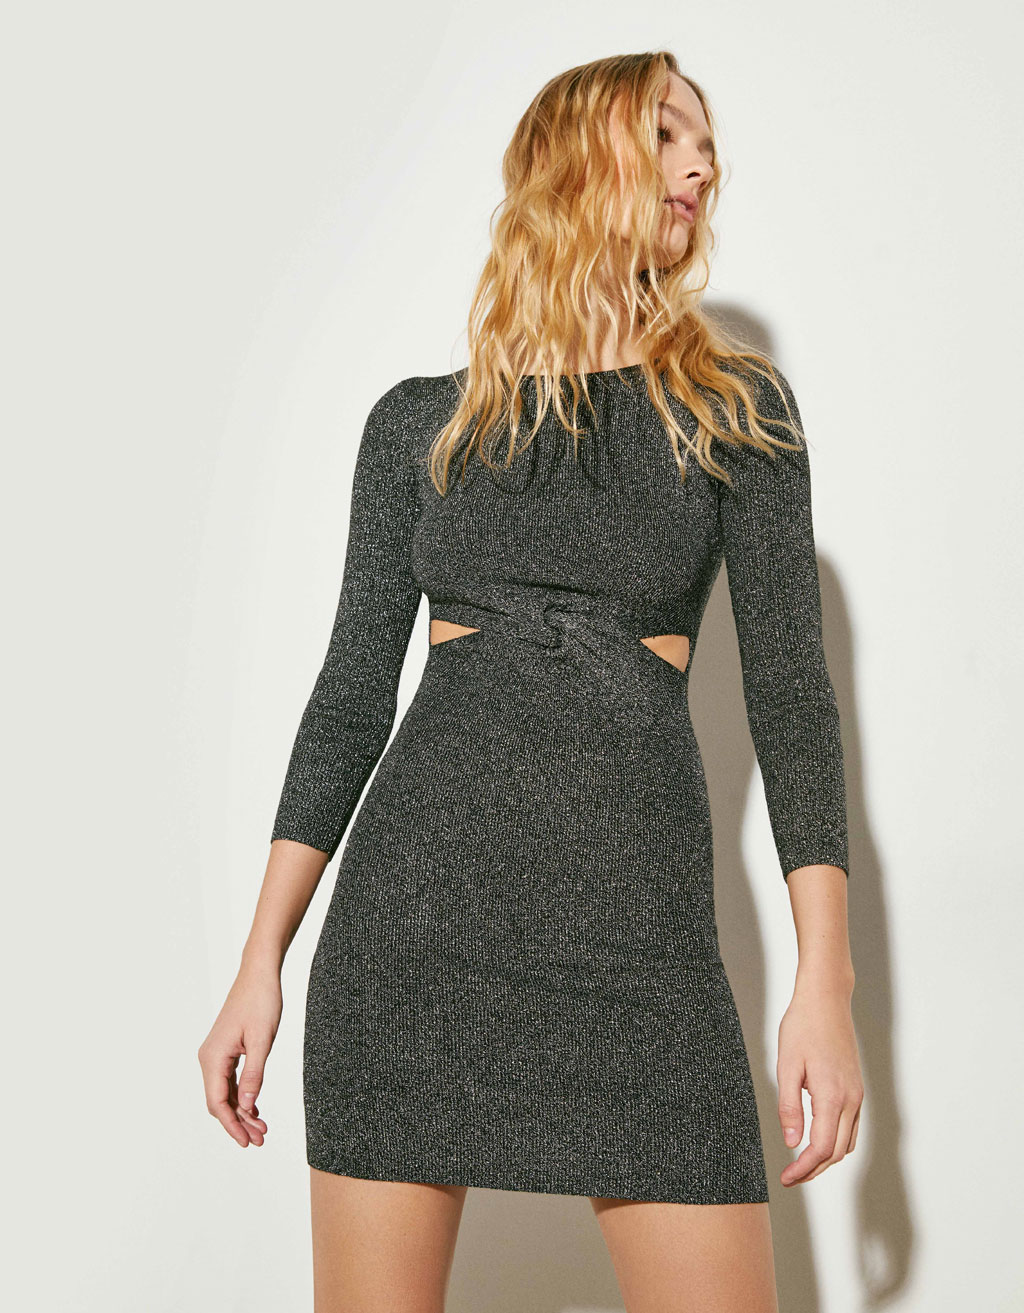 Metallic knit cut-out dress